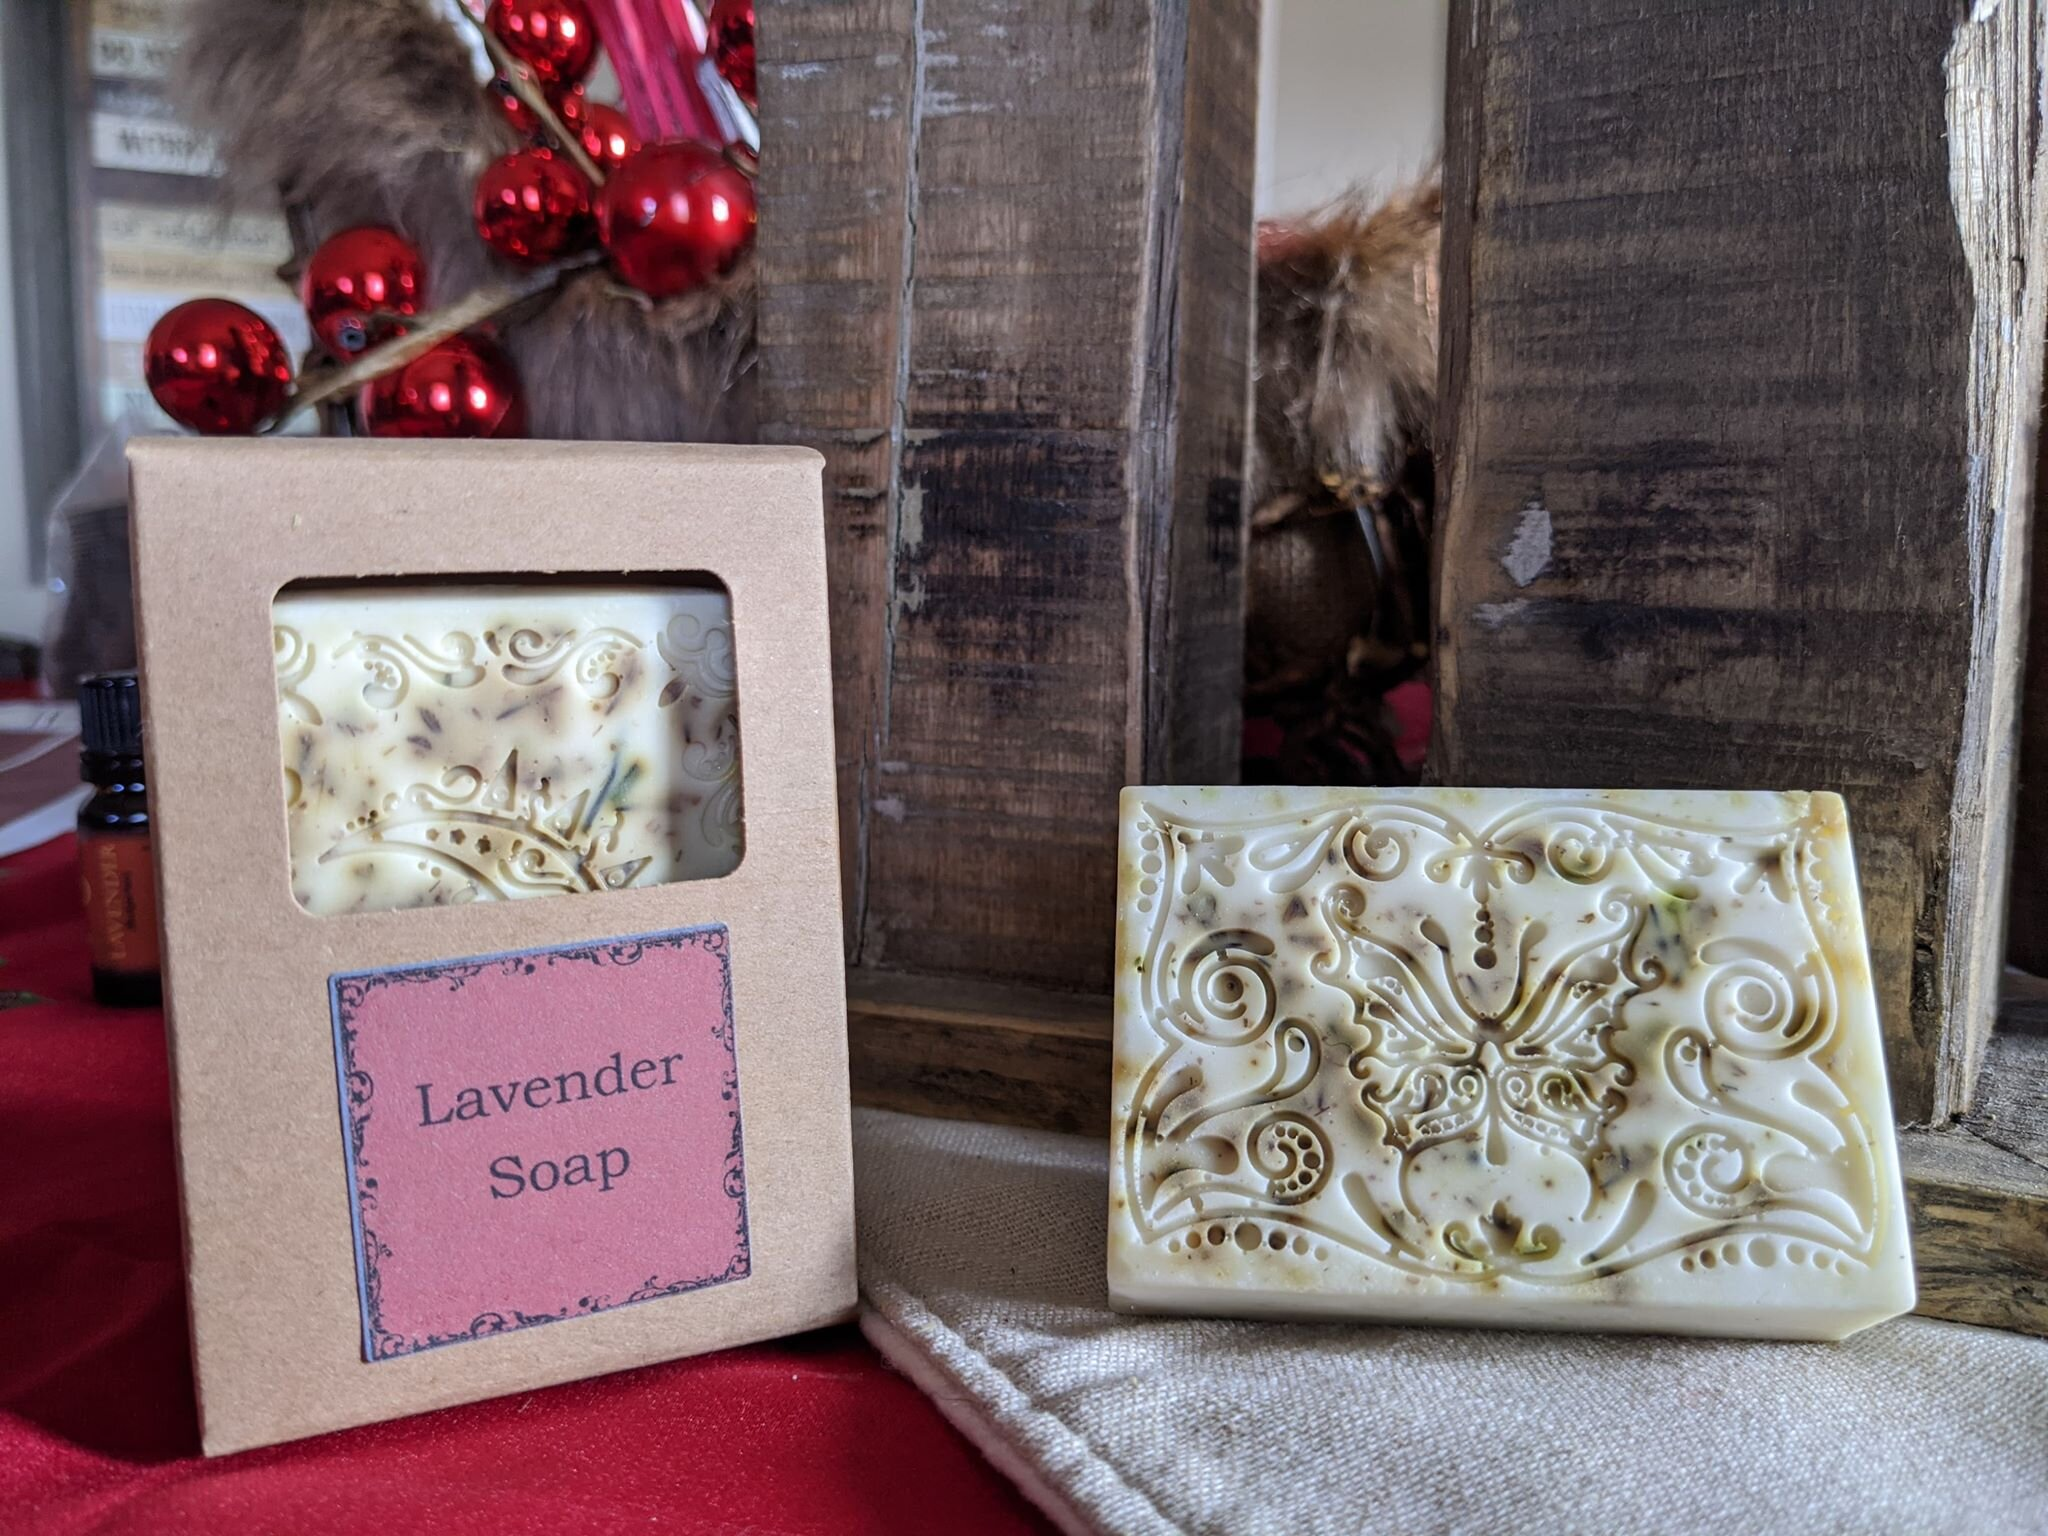 Lavender Soap - The Simply Good Lavender Soap is a beautiful bar of soap with real lavender and Bulgarian Lavender Essential Oil.  This soap is designed to promote stress relief, reduce stress and promote sleep.